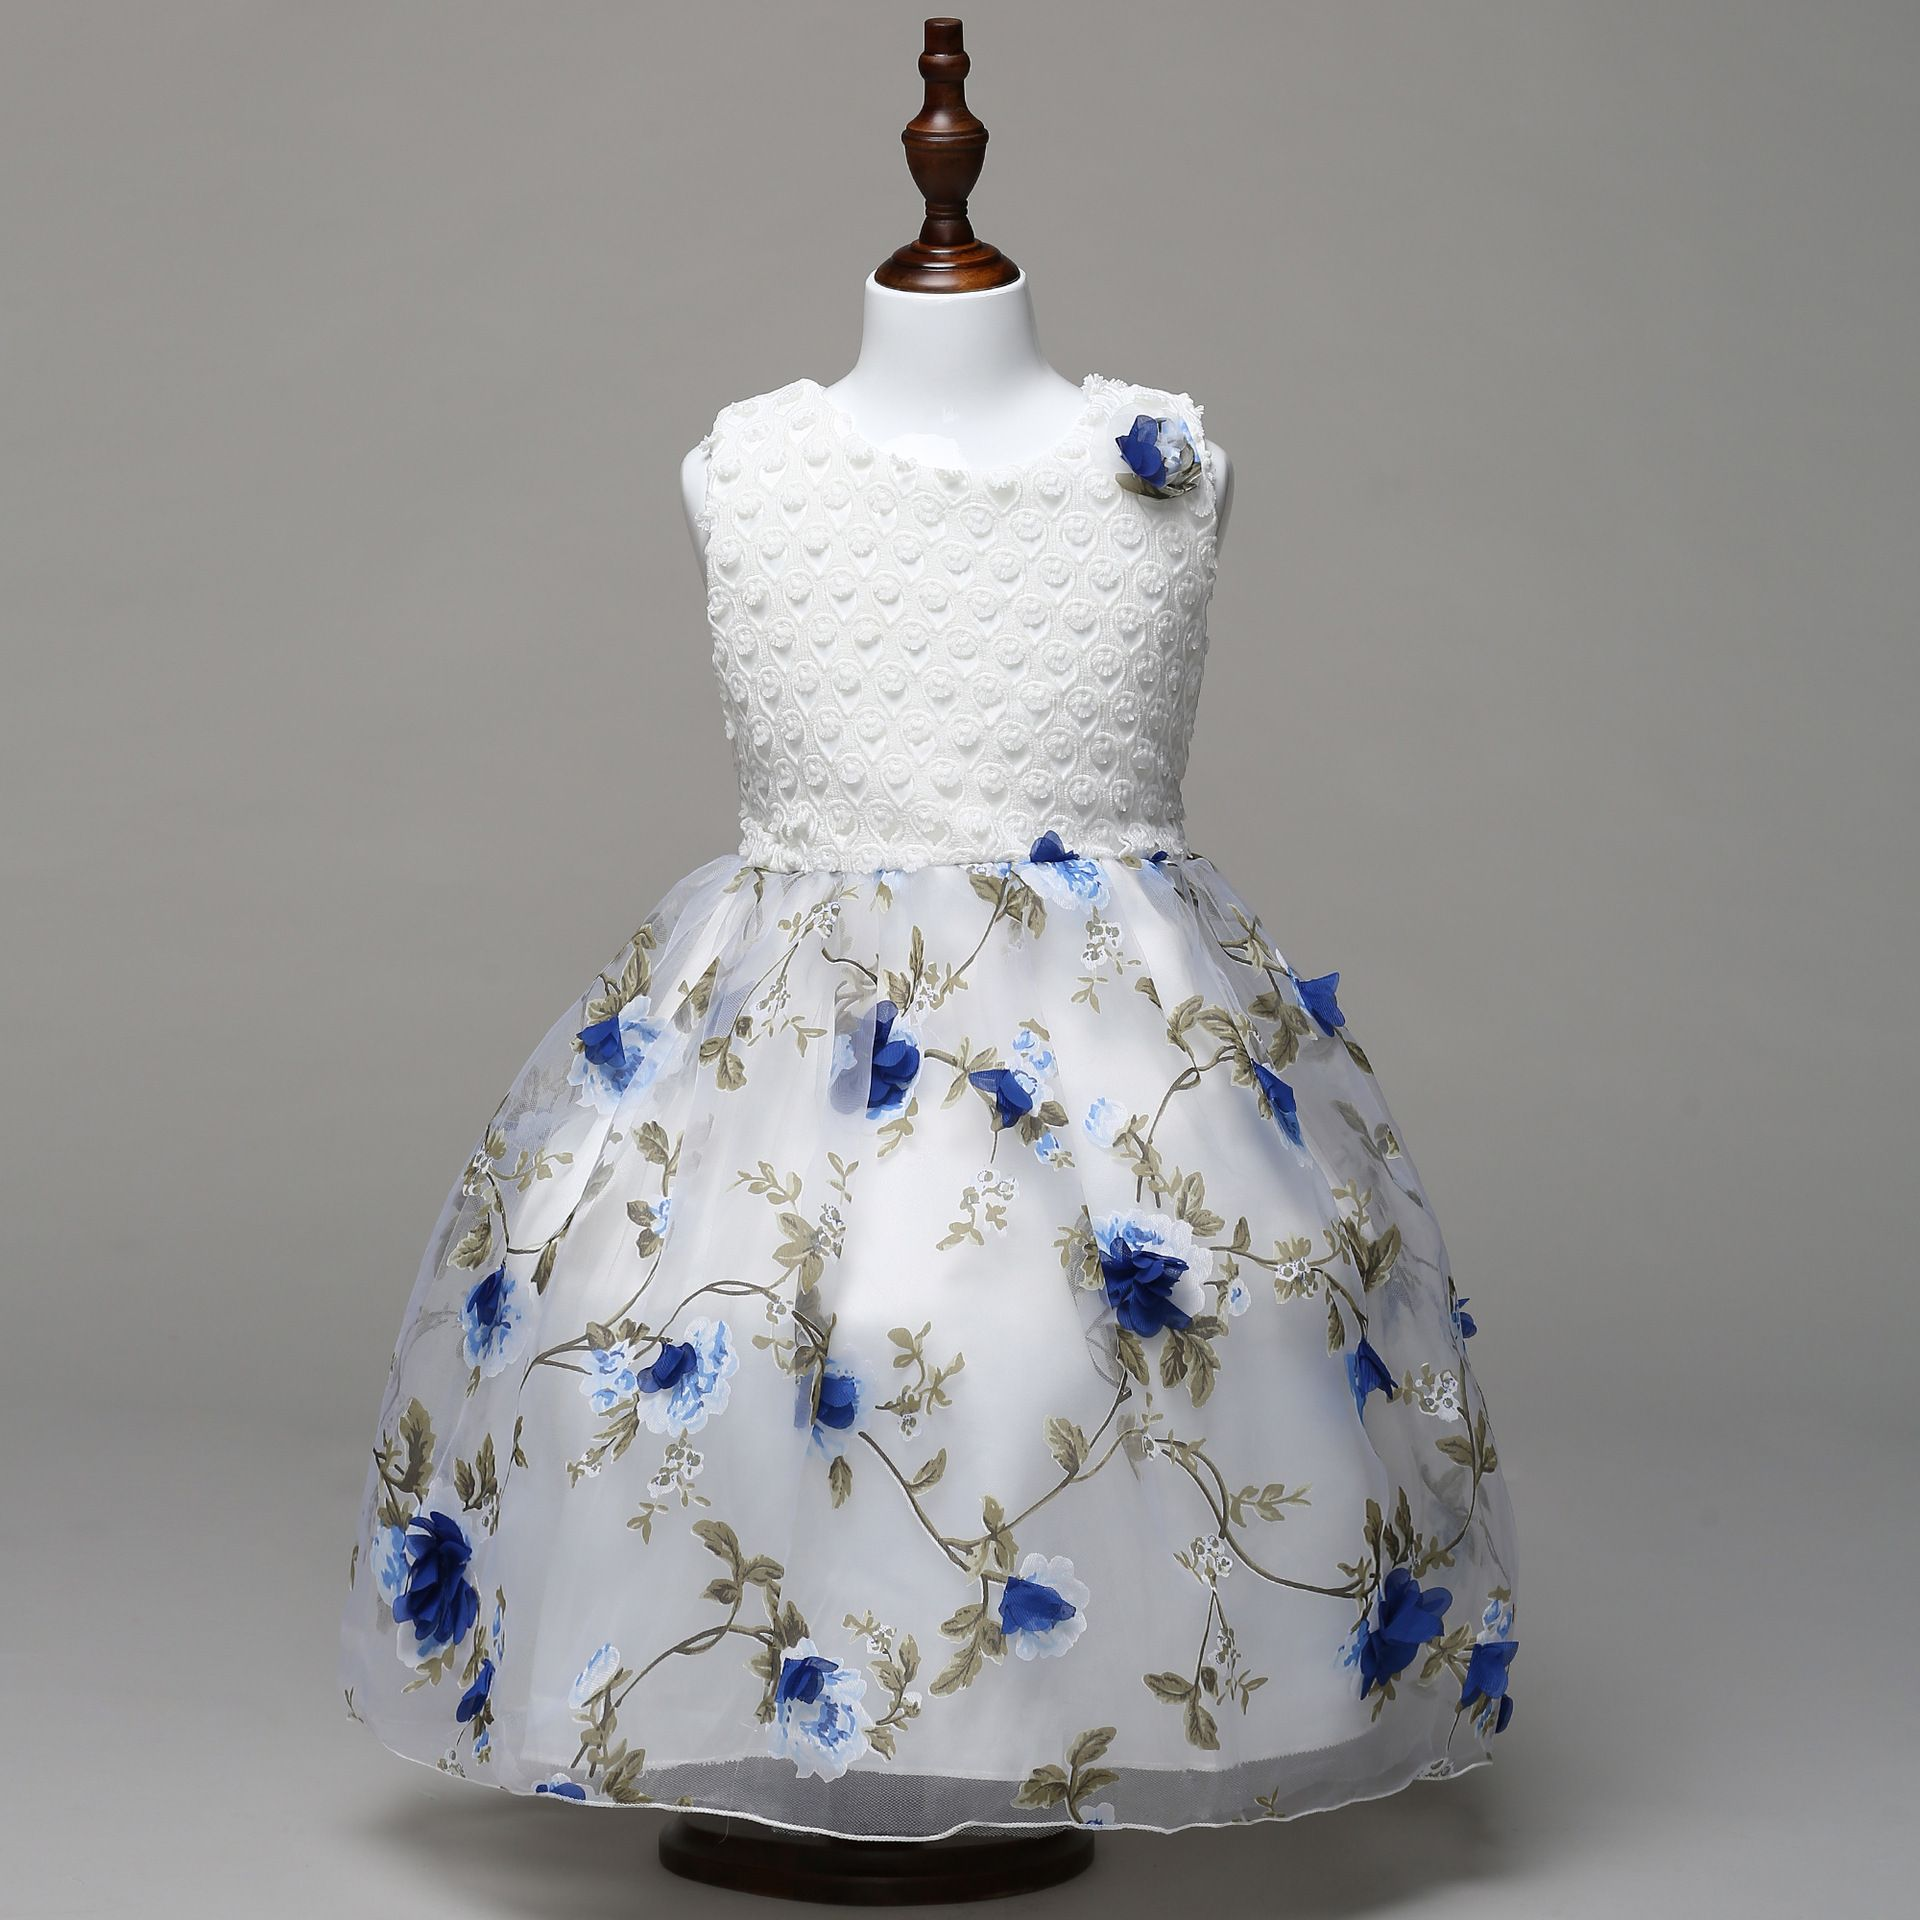 Luxury Baby Flower Girl Dresses Children Clothes Infant Floral Party